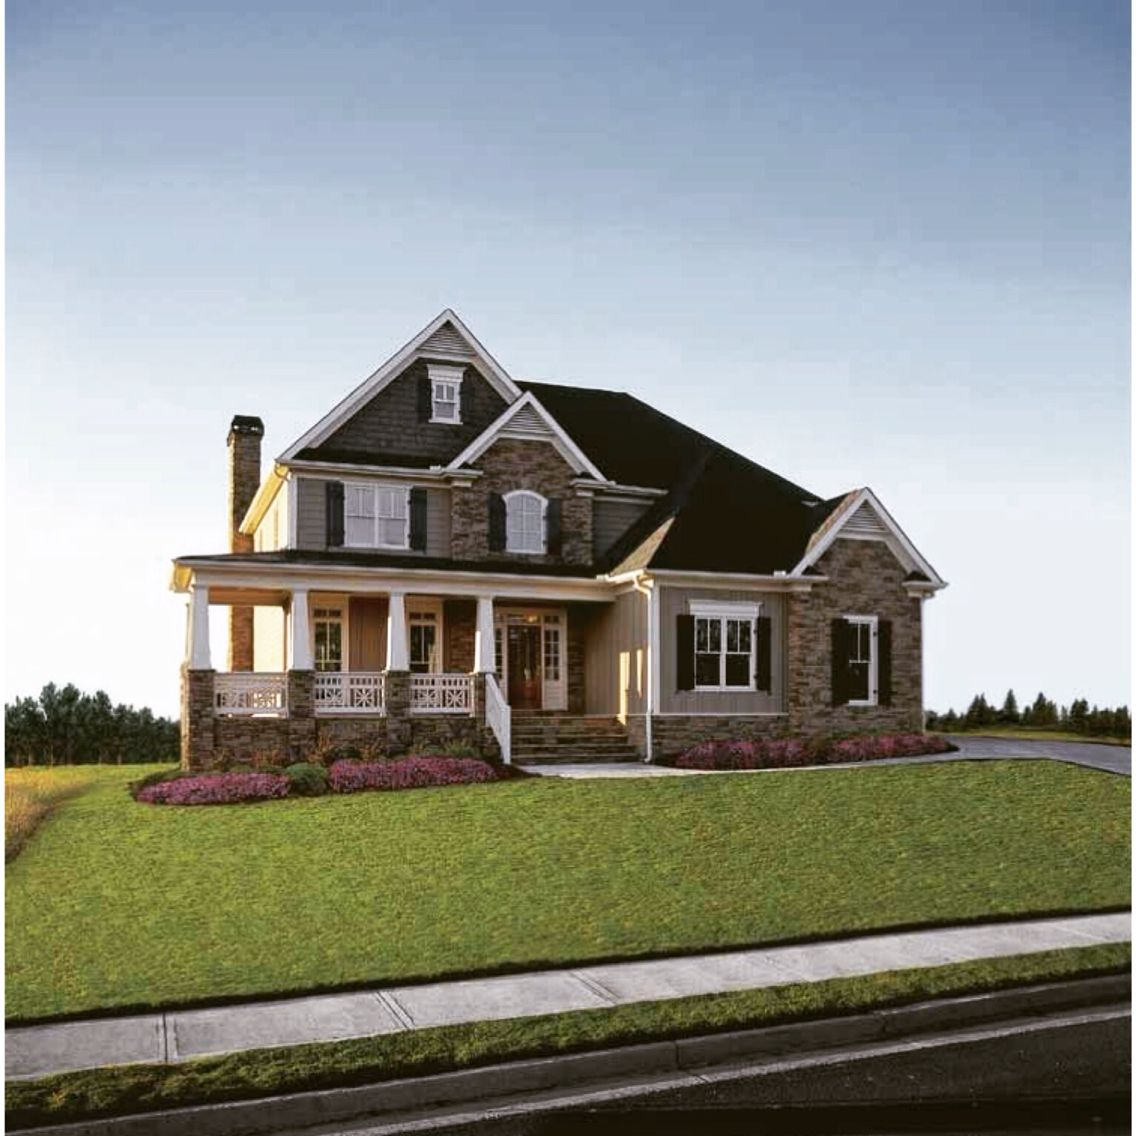 Craftsman Style House Plan 4 Beds 2.5 Baths 2443 Sq/Ft